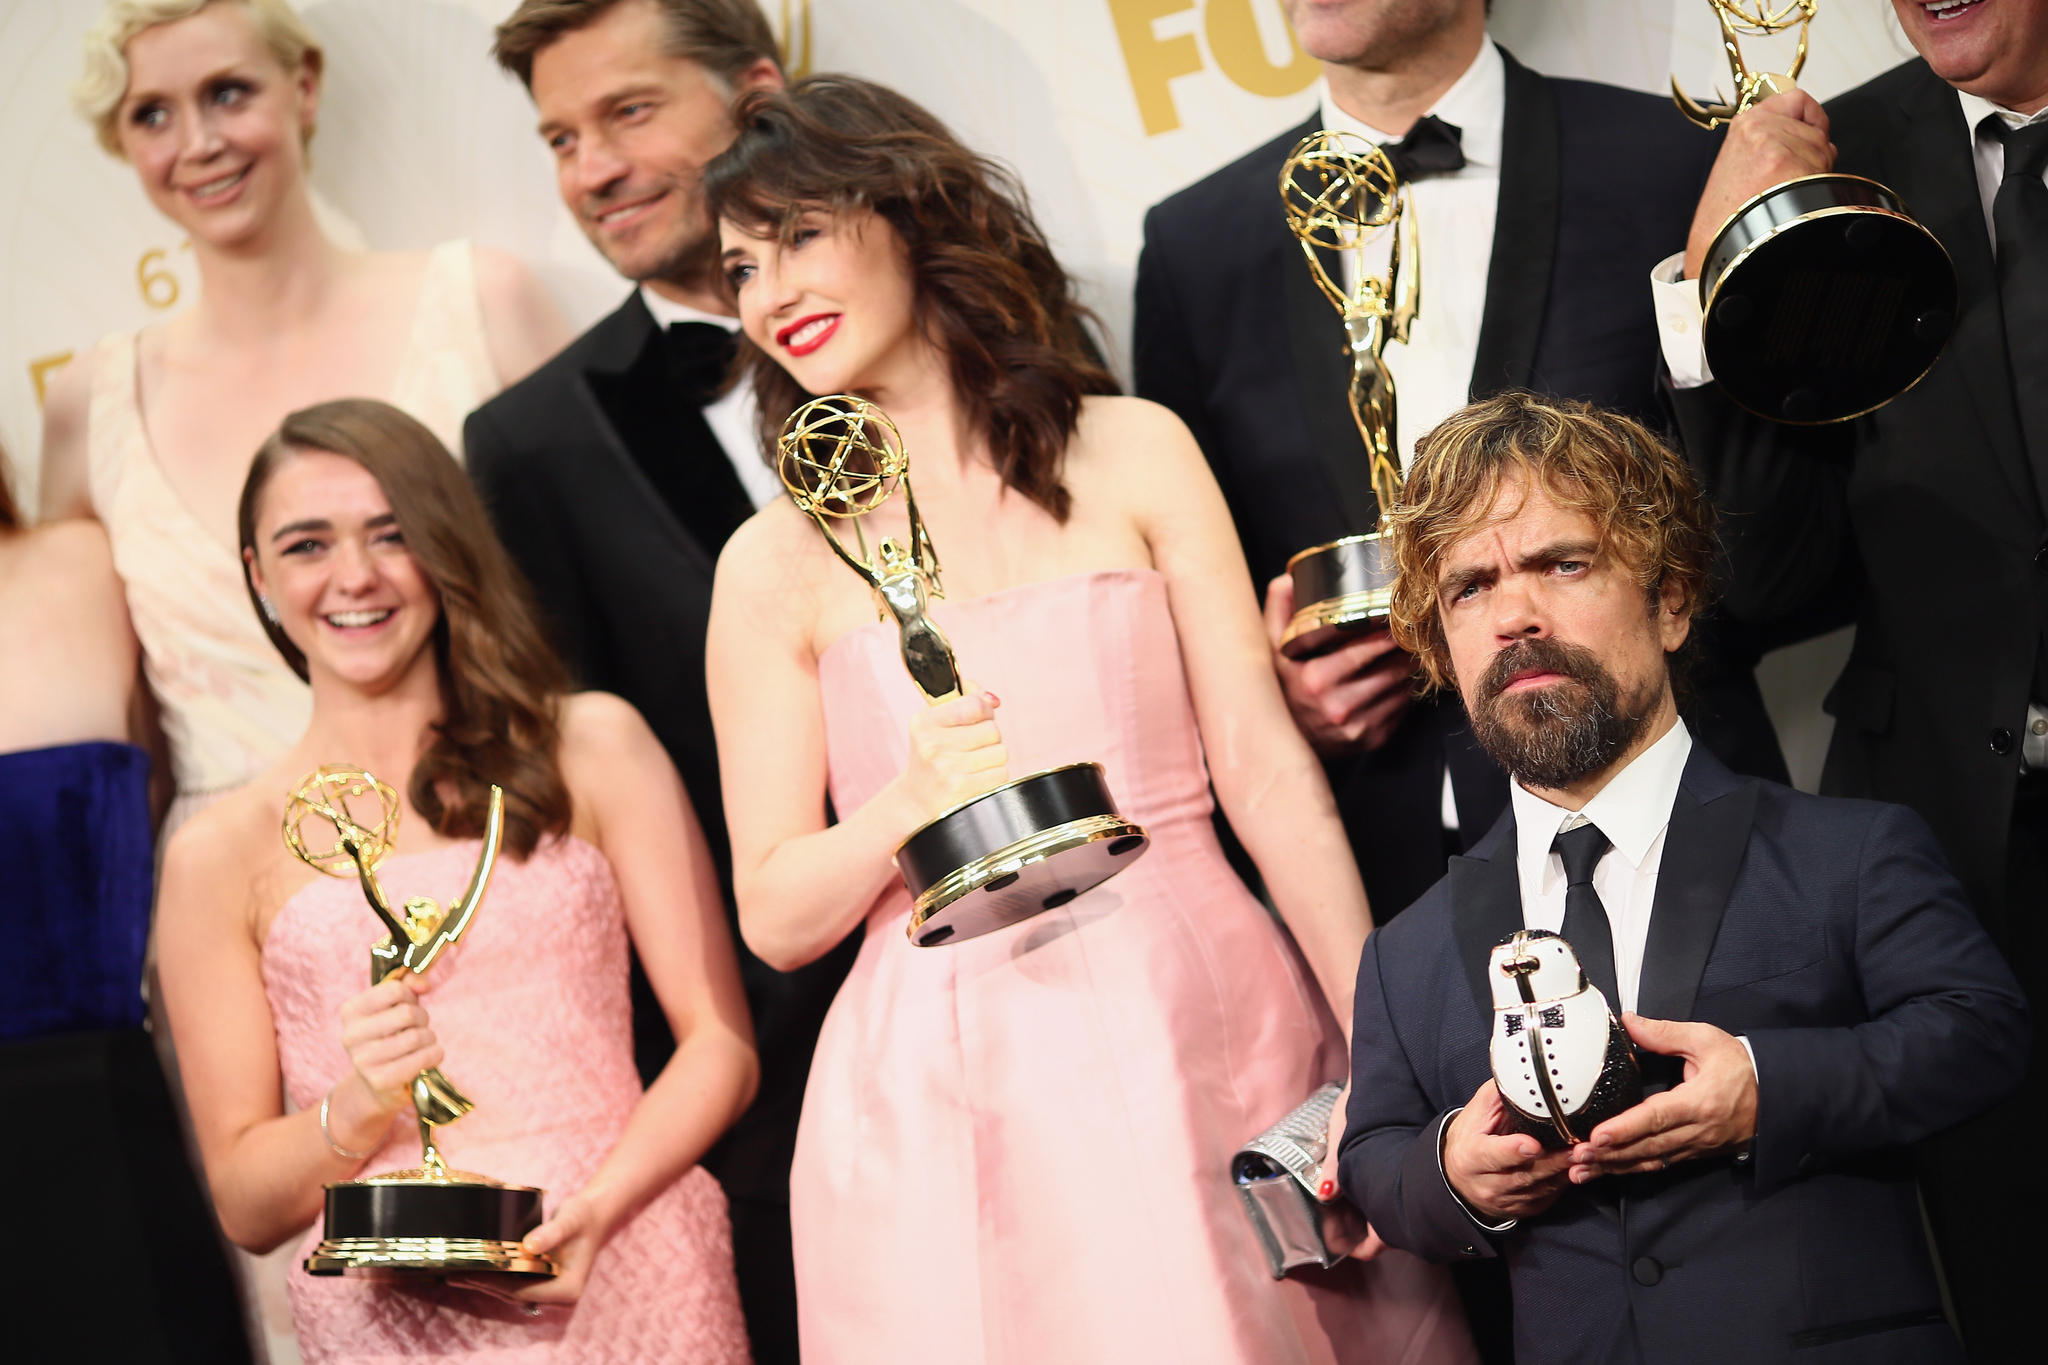 Nikolaj Coster-Waldau, Peter Dinklage, Carice van Houten, Maisie Williams, and Gwendoline Christie at an event for The 67th Primetime Emmy Awards (2015)